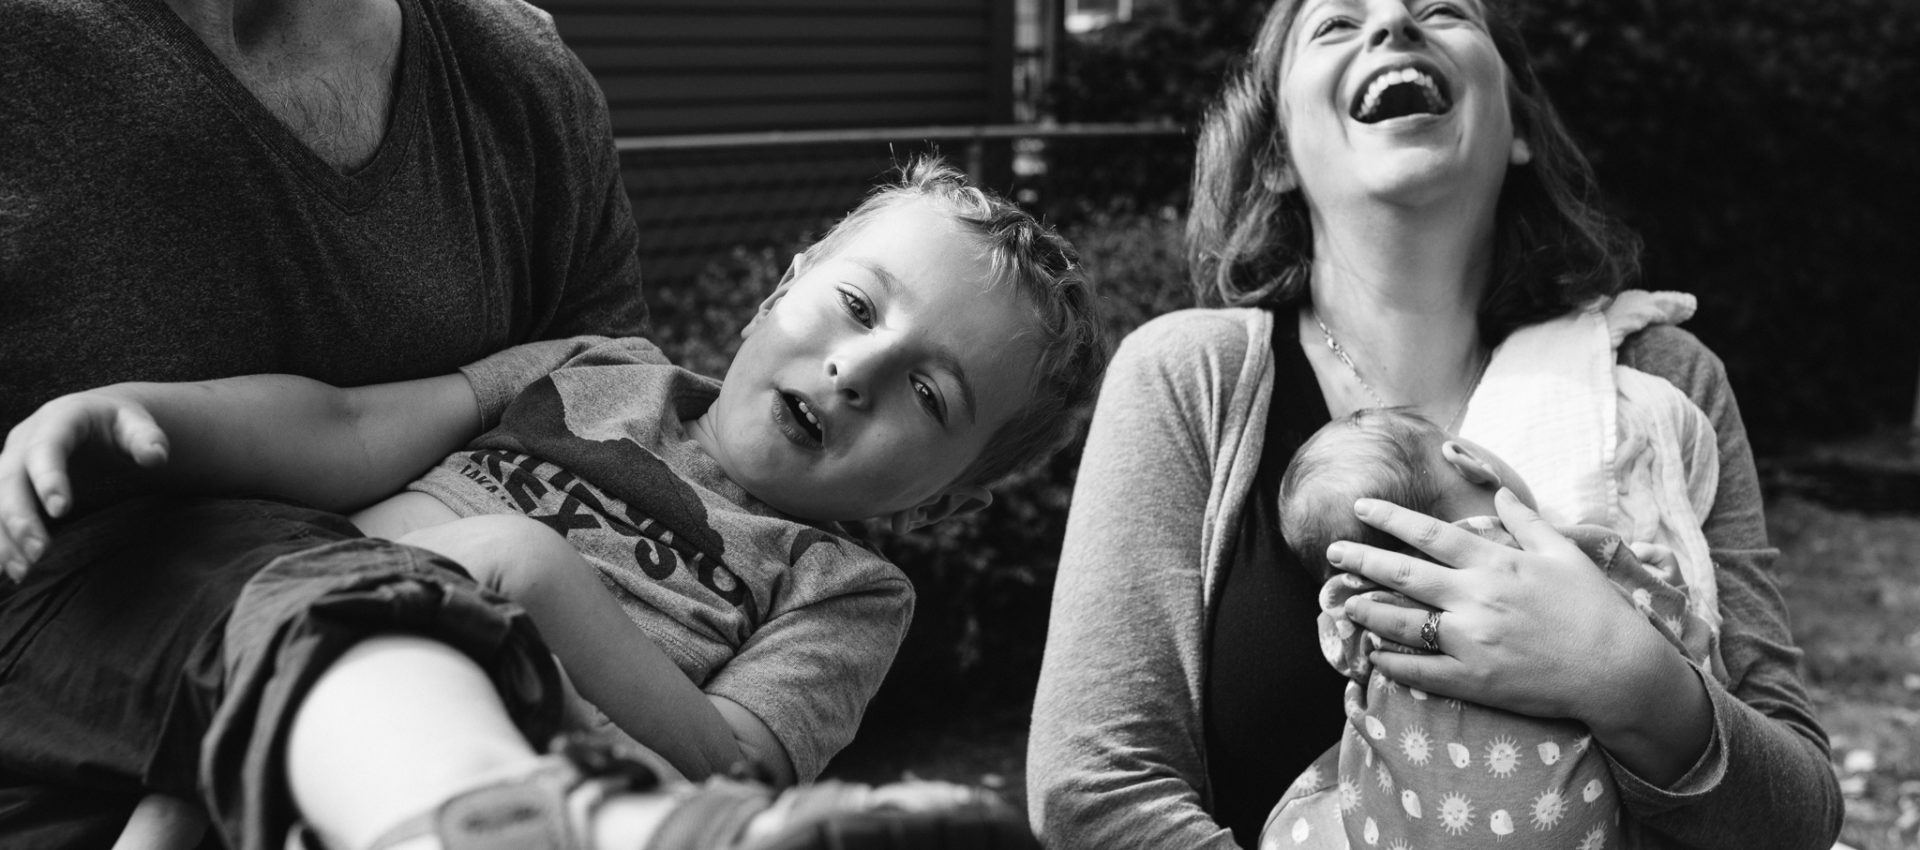 Best tacoma photographer Jessica Uhler Photography captures family emotion in on-location, in-home photo sessions